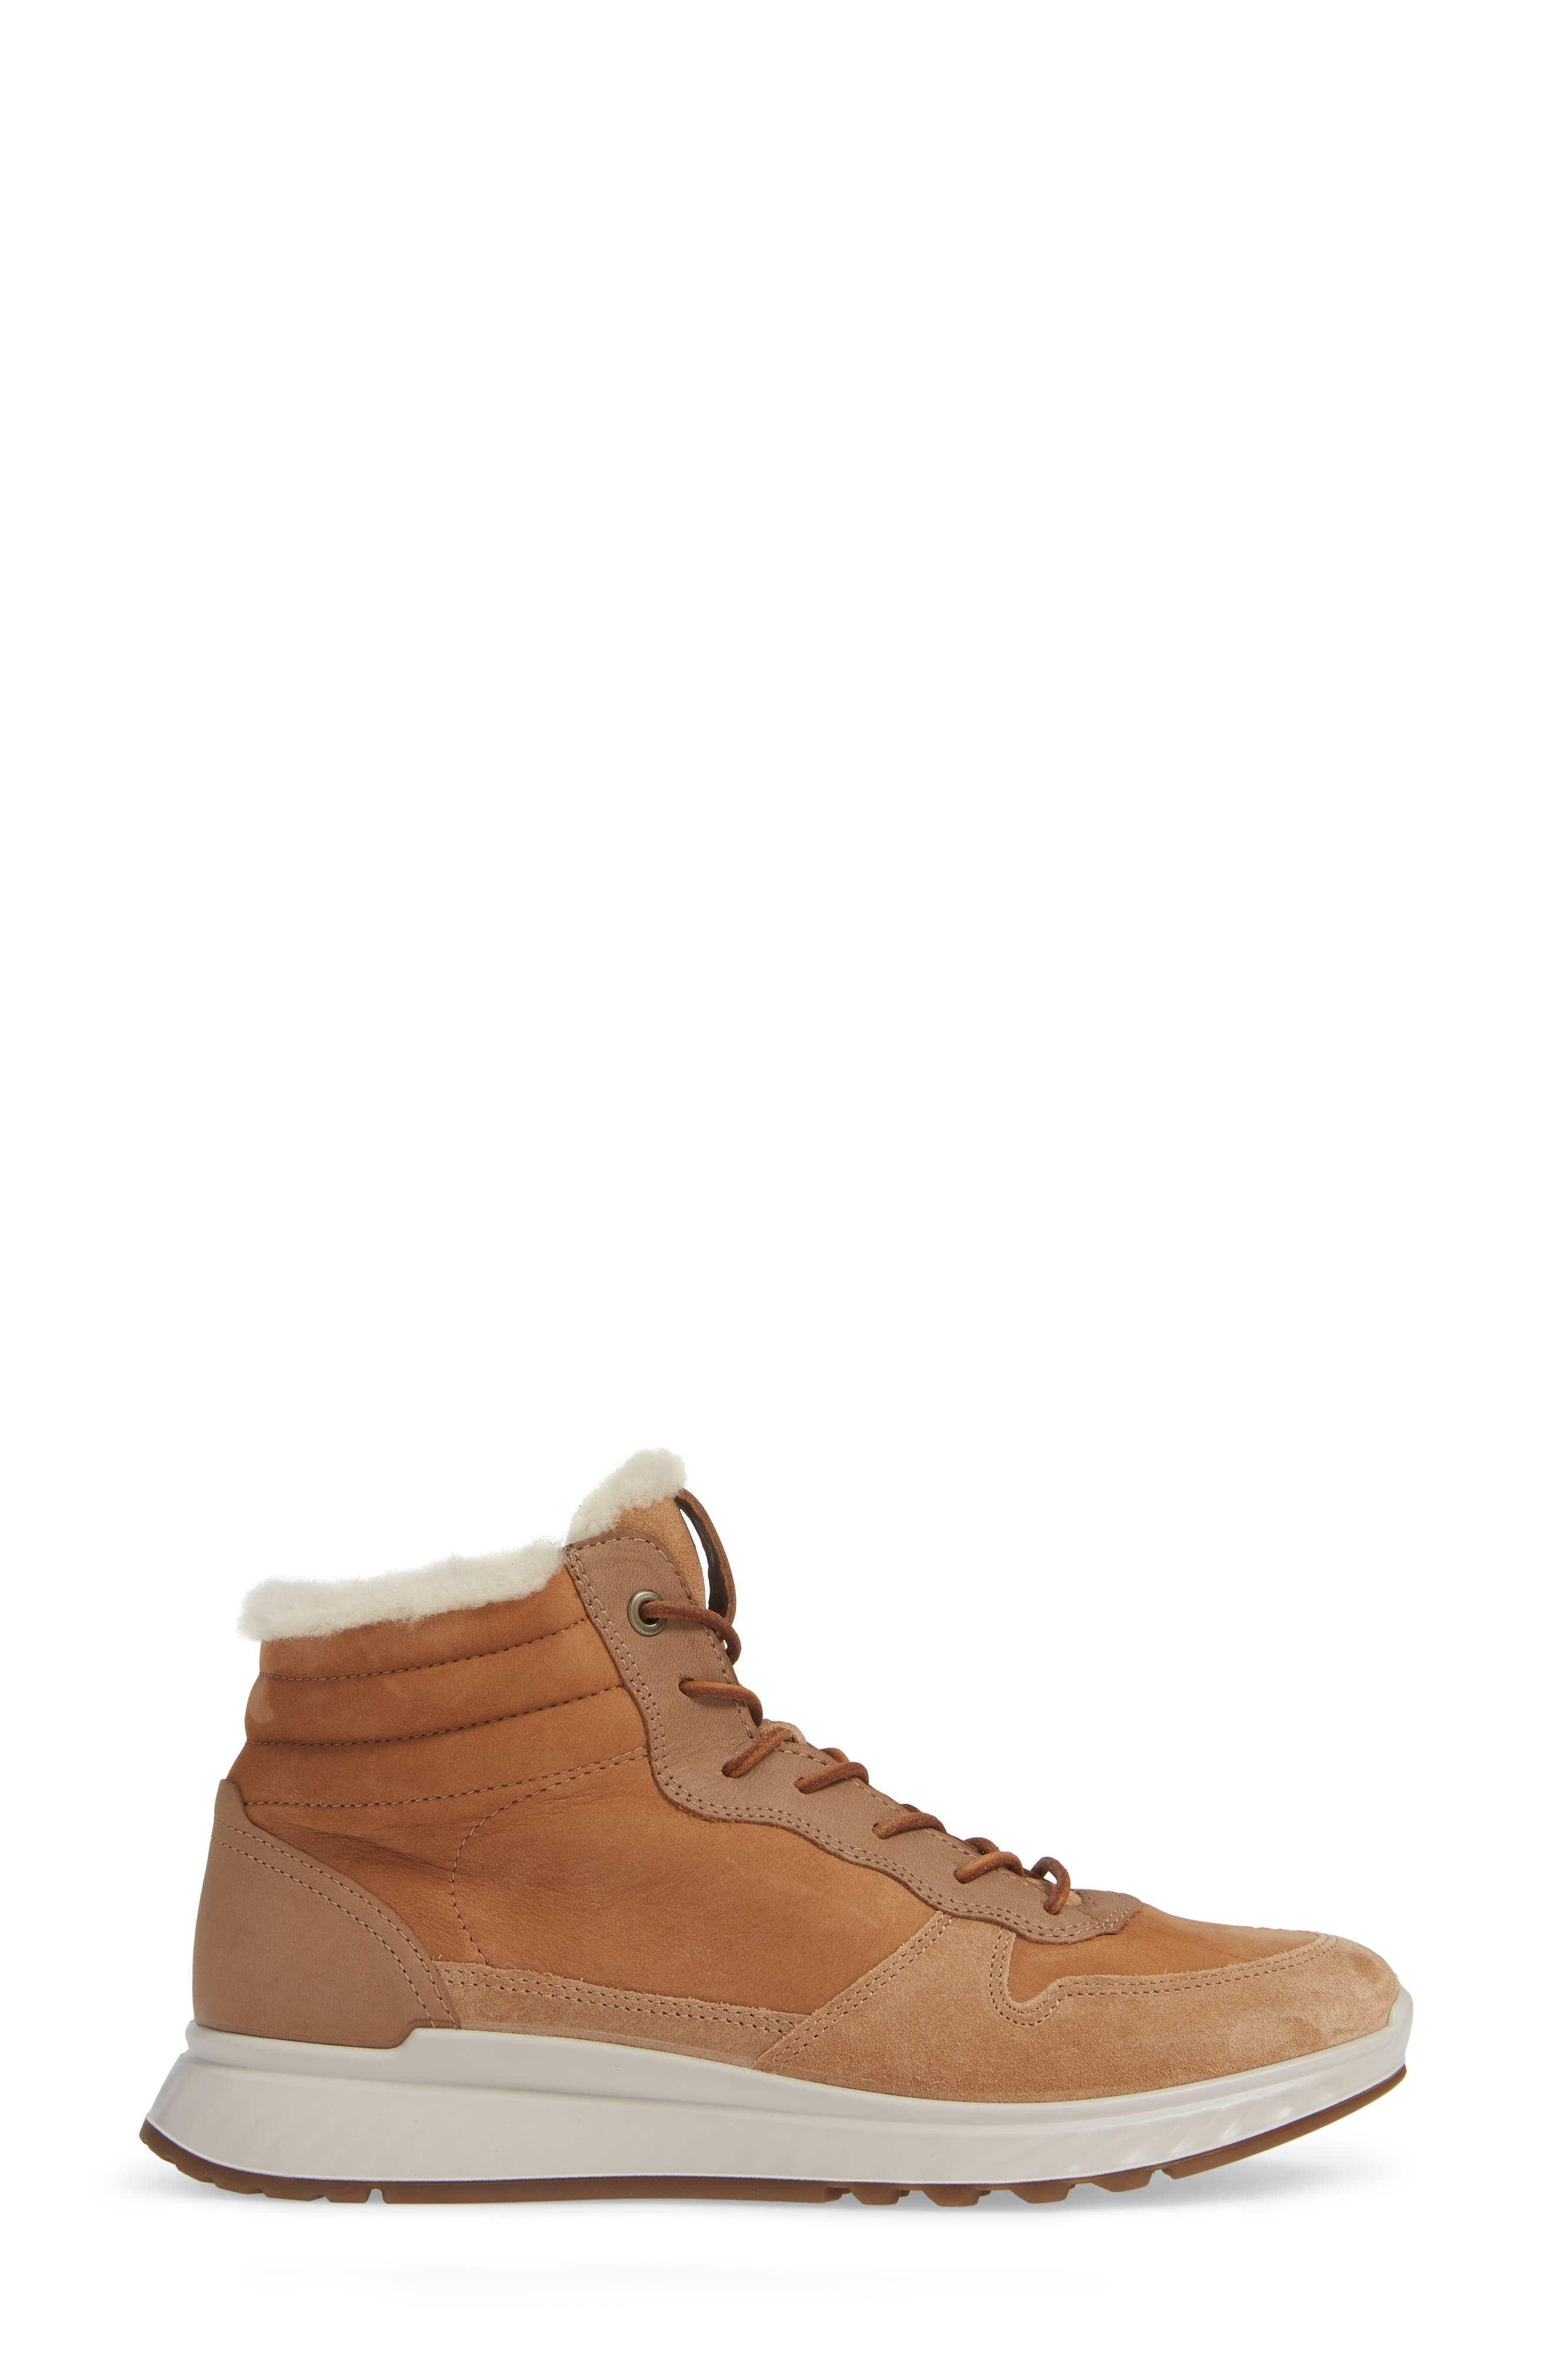 ST1 Genuine Shearling High Top Sneaker,                             Alternate thumbnail 3, color,                             200